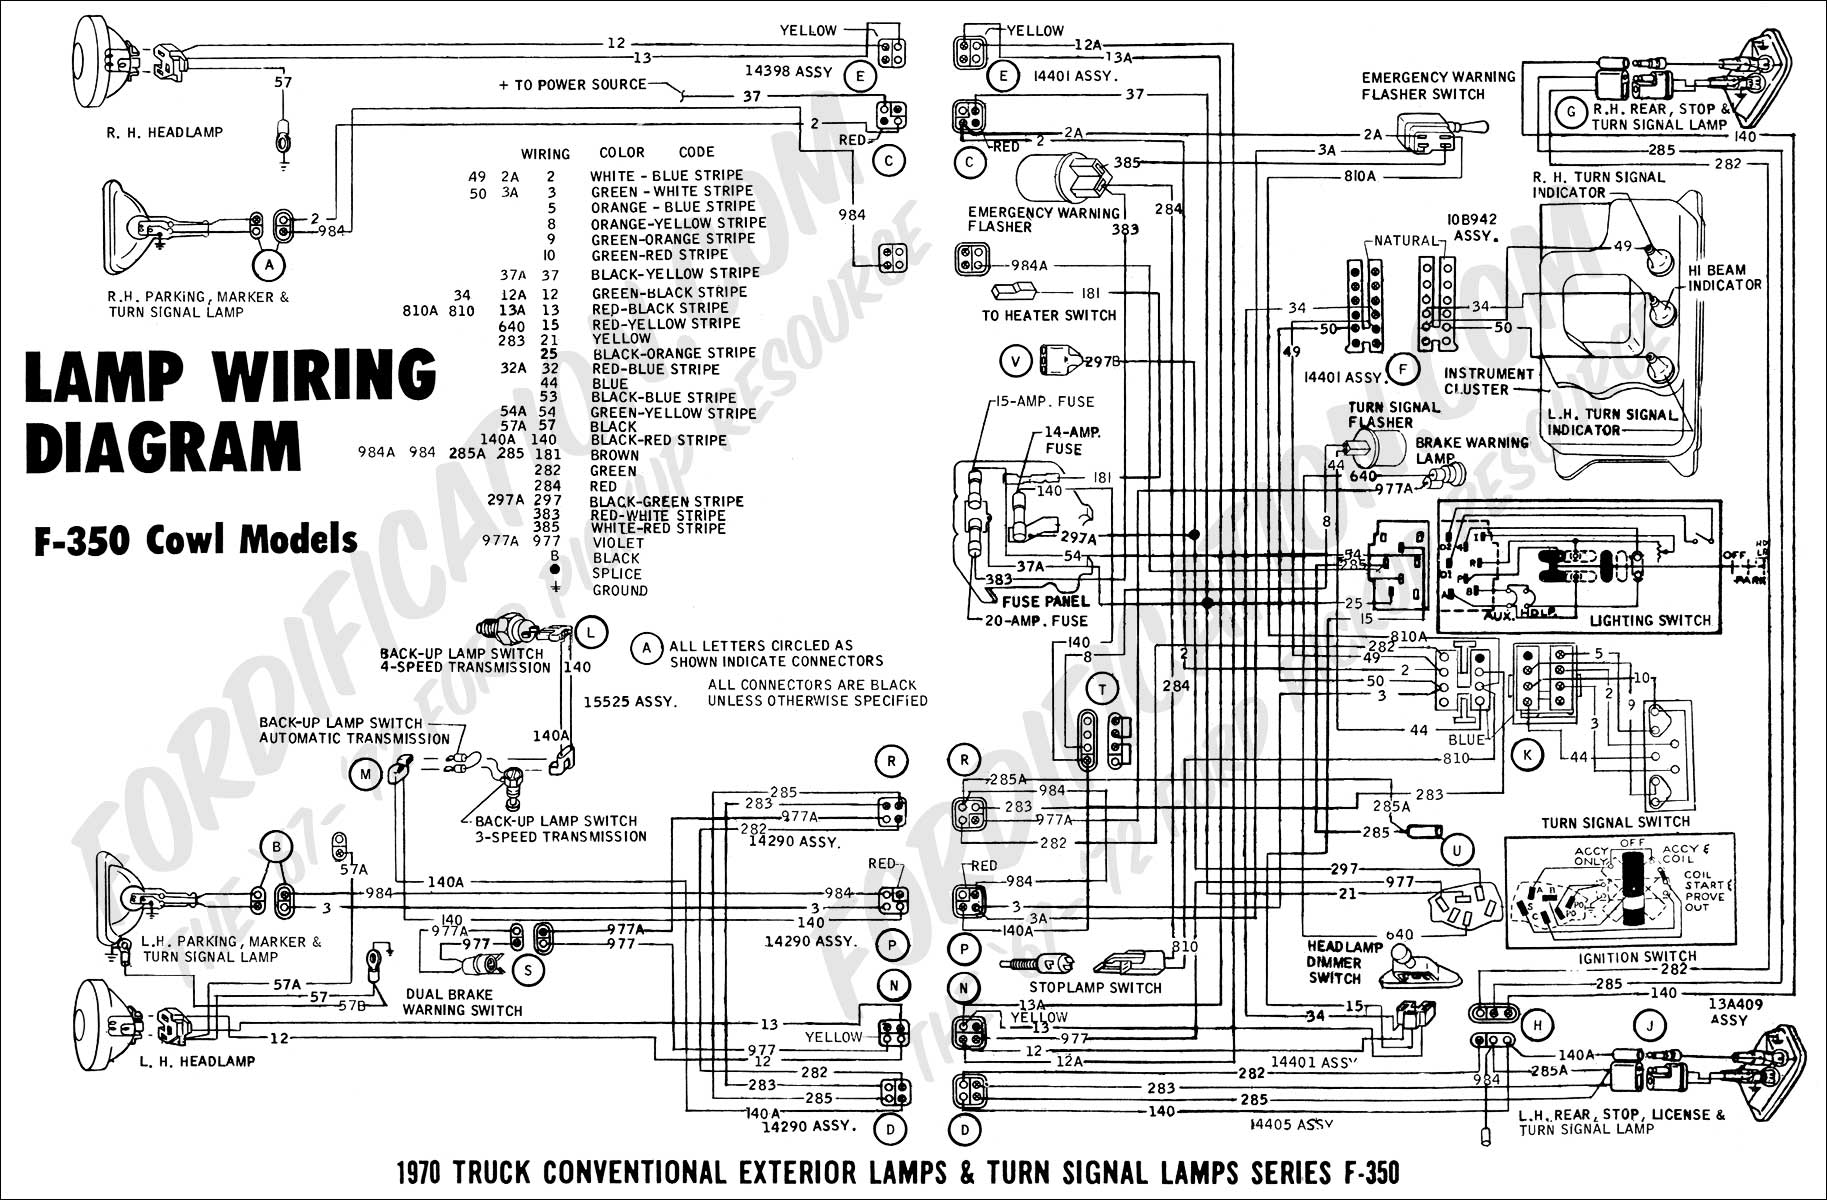 1993 ford f350 wiring index listing of wiring diagrams rh 45yuyg5e 365jours info